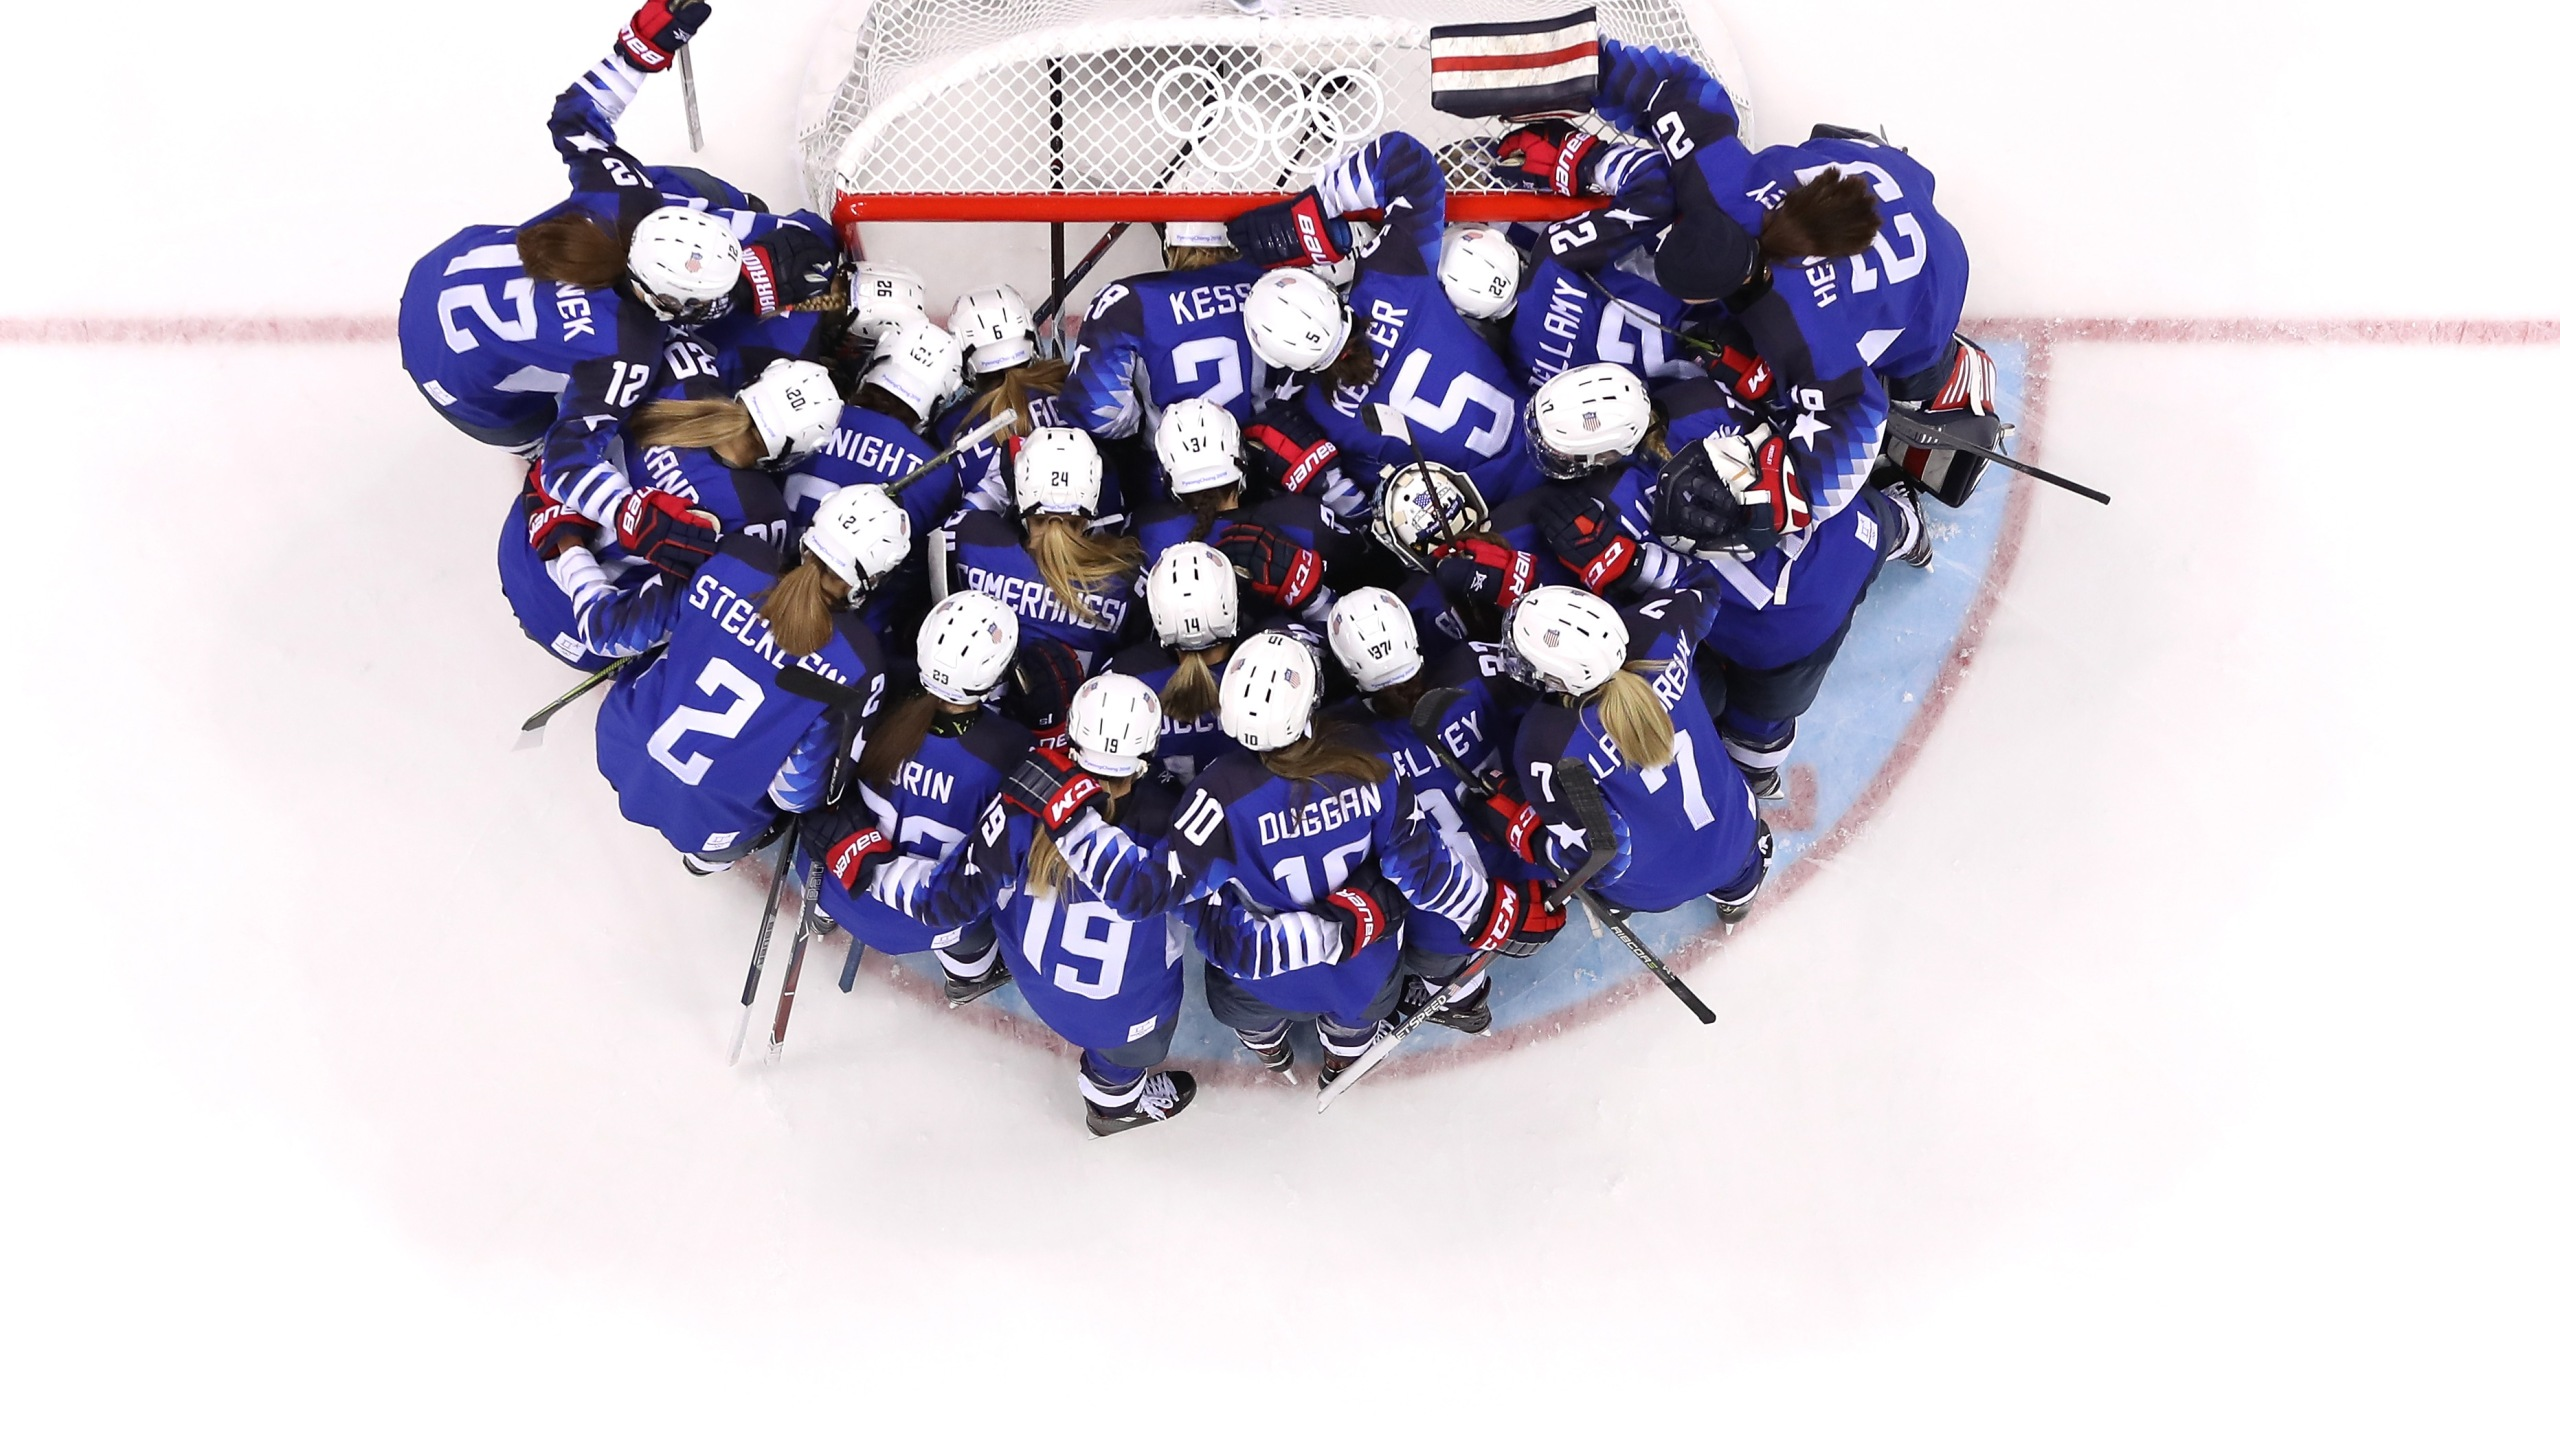 Team United States huddles on the ice prior to the women's gold medal game against Canada at the PyeongChang 2018 Winter Olympics on Feb. 22, 2018. (Credit: Jamie Squire / Getty Images)